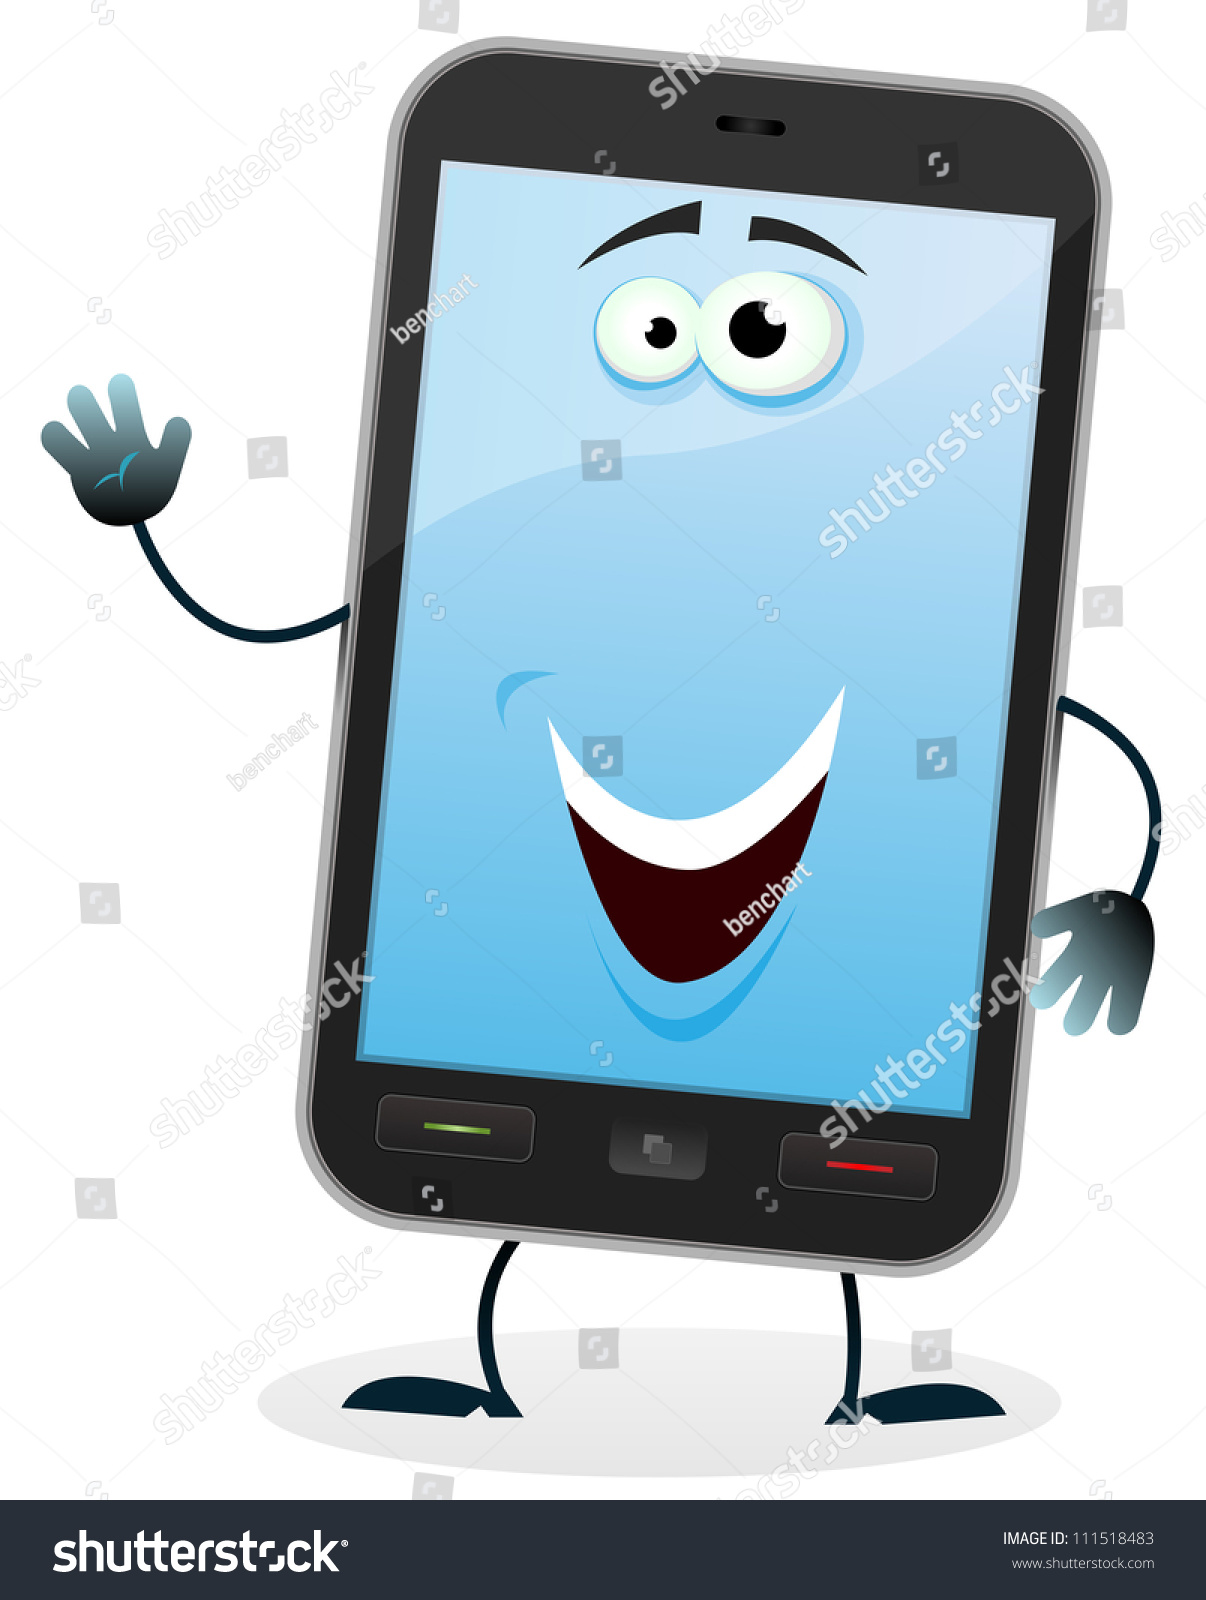 Cartoon Mobile Phone Character Illustration Of A Cartoon